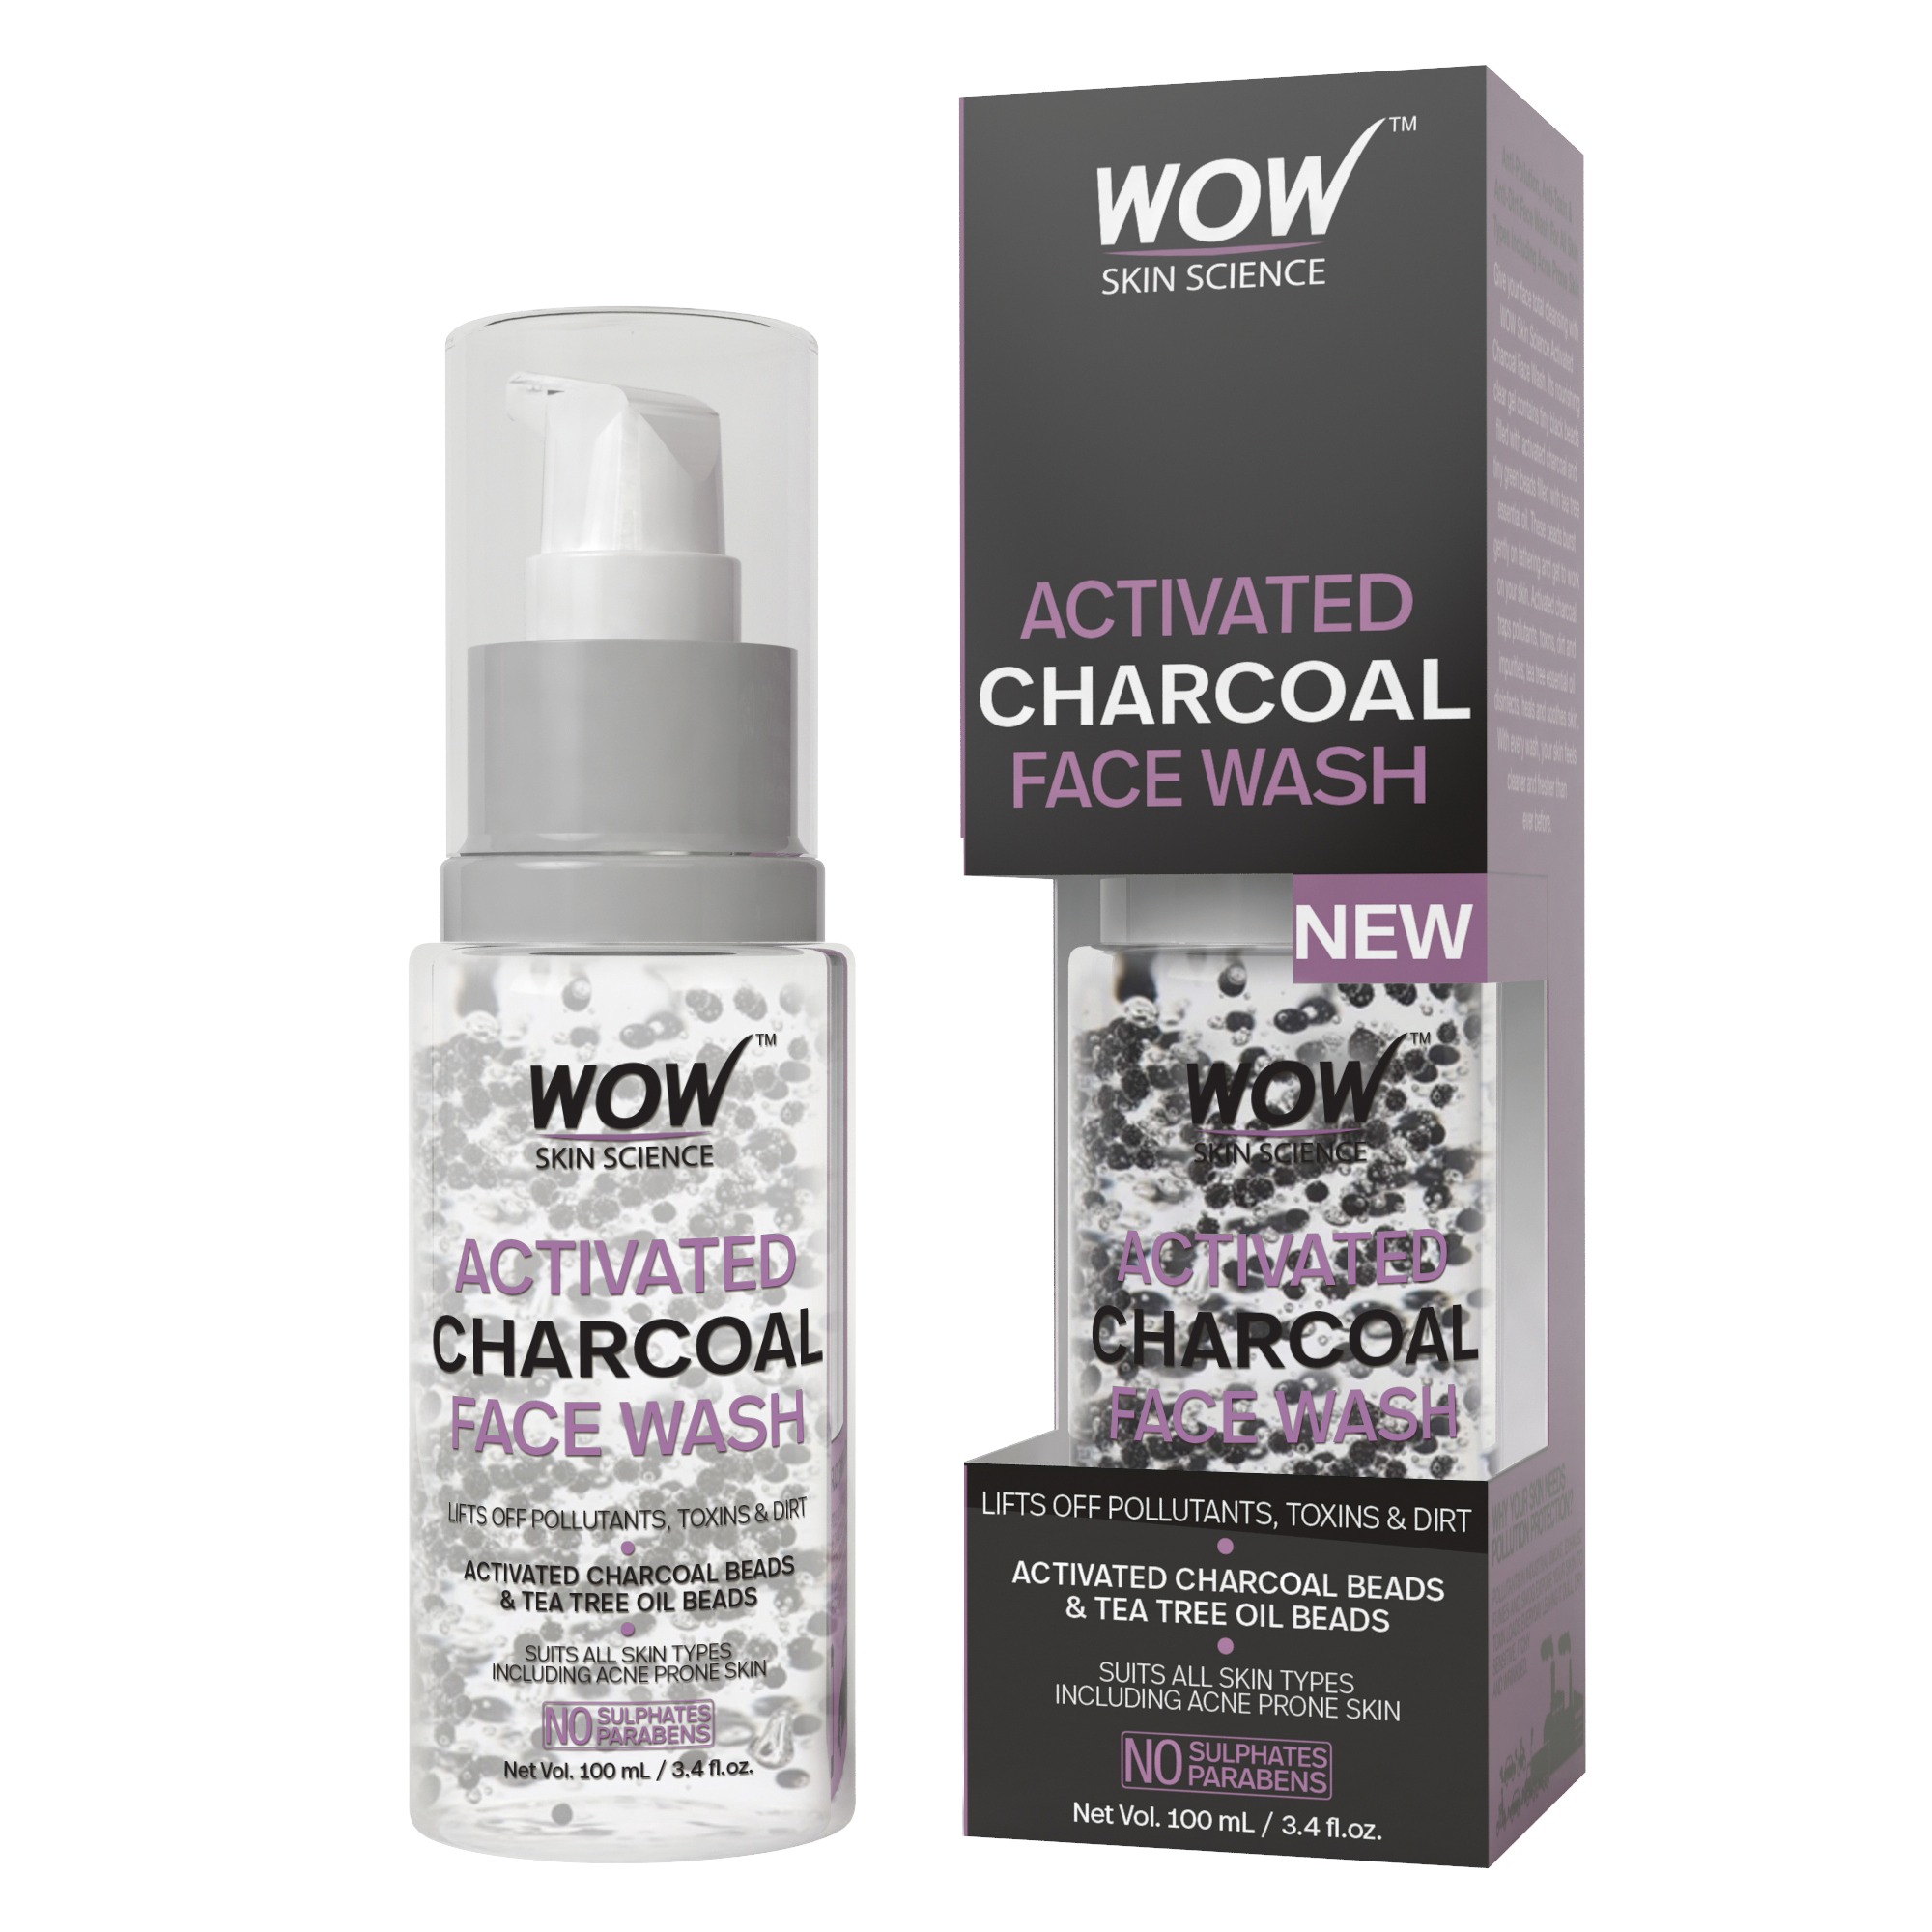 WOW Skin Science Activated Charcoal Face Wash - 100 mL_INR 349 (2)